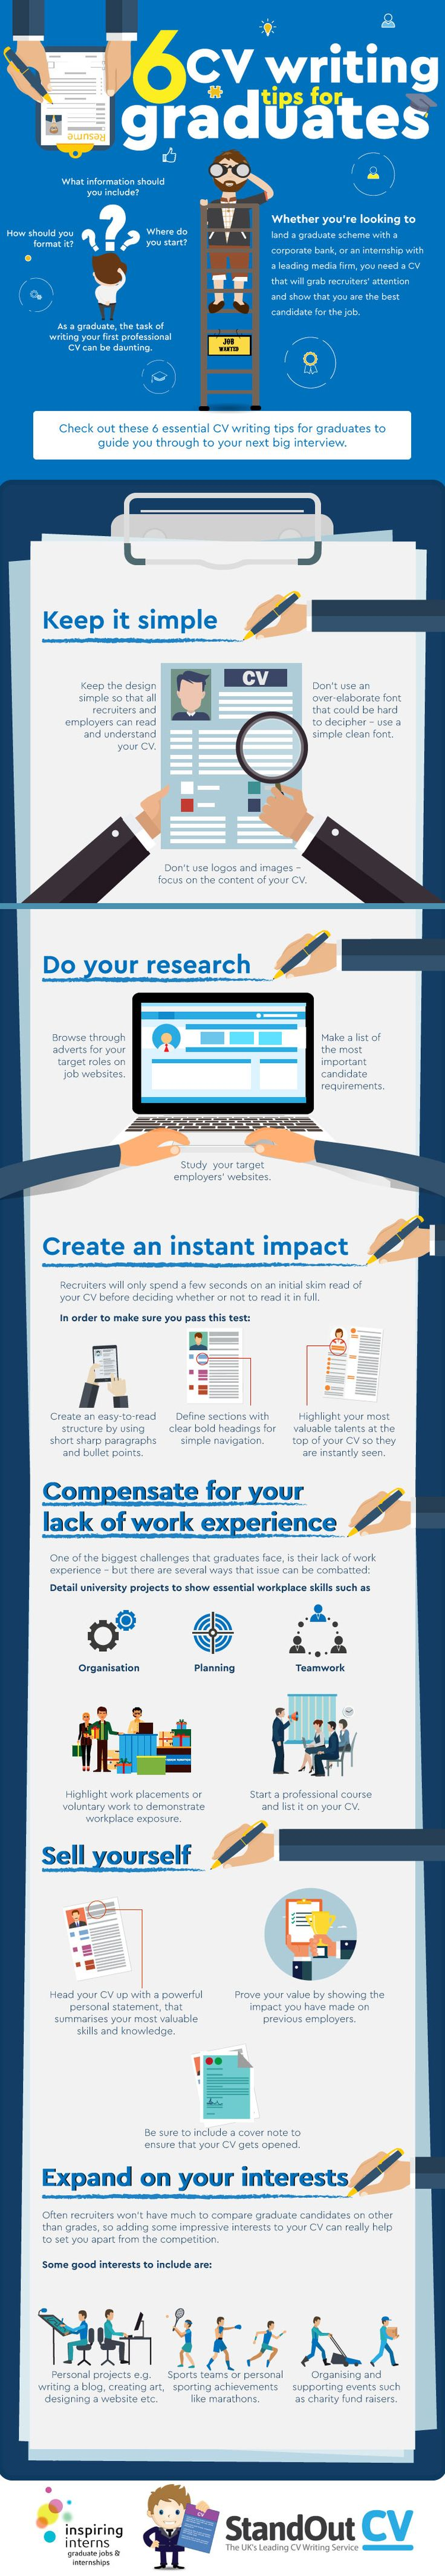 6 CV Writing Tips For Graduates #Infographic #Career #Resume